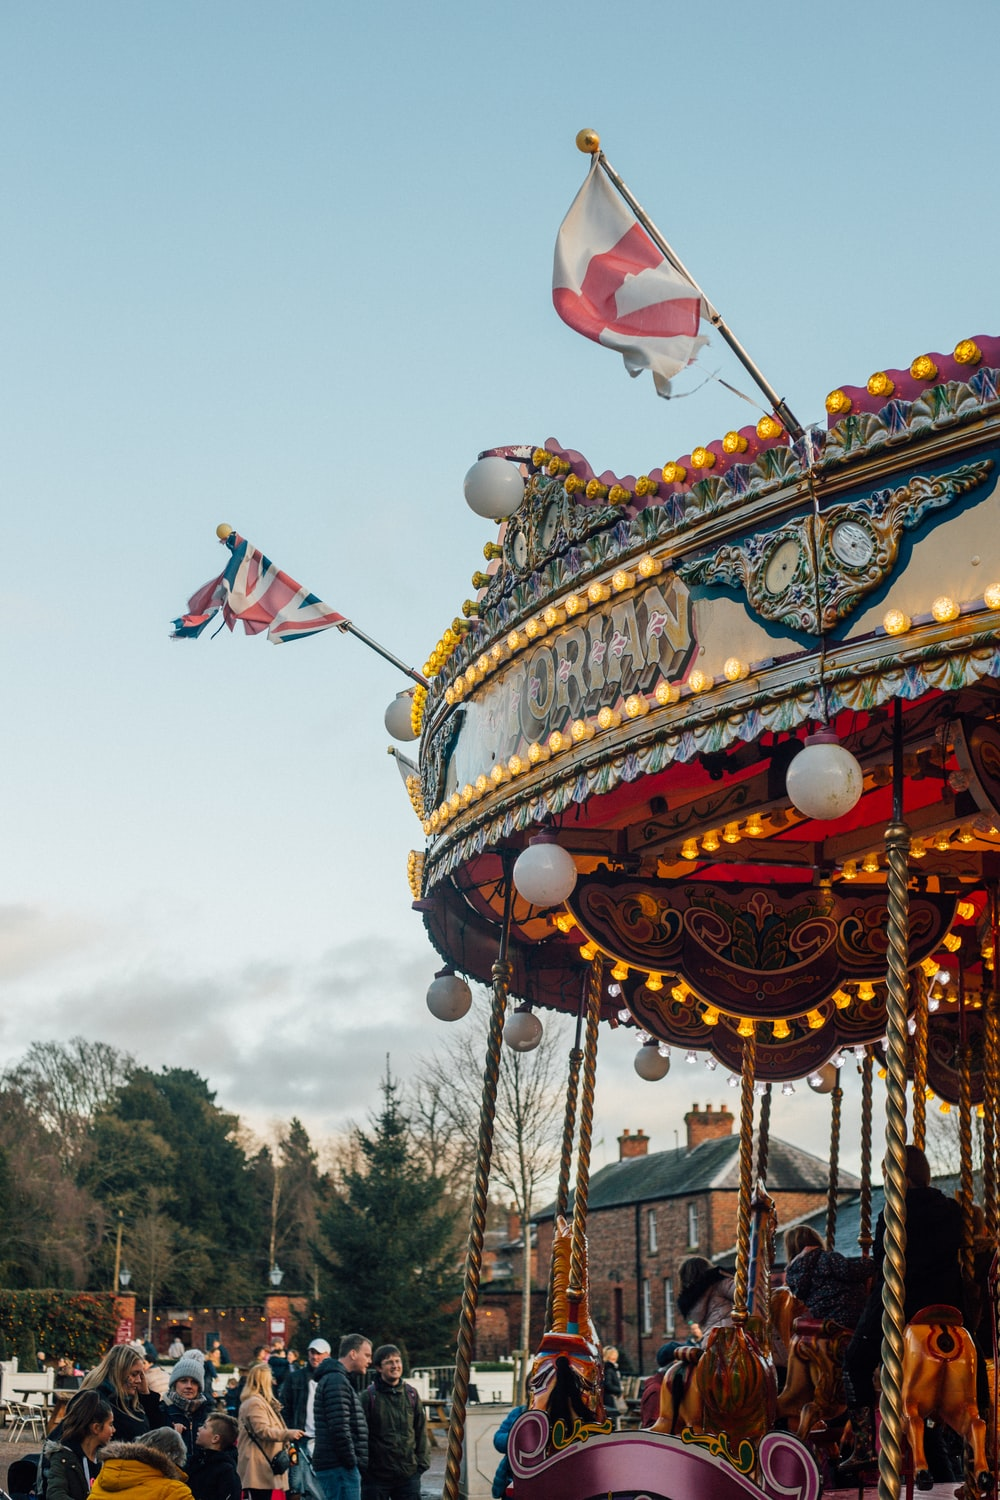 people around a carousel under a calm blue sky during daytime